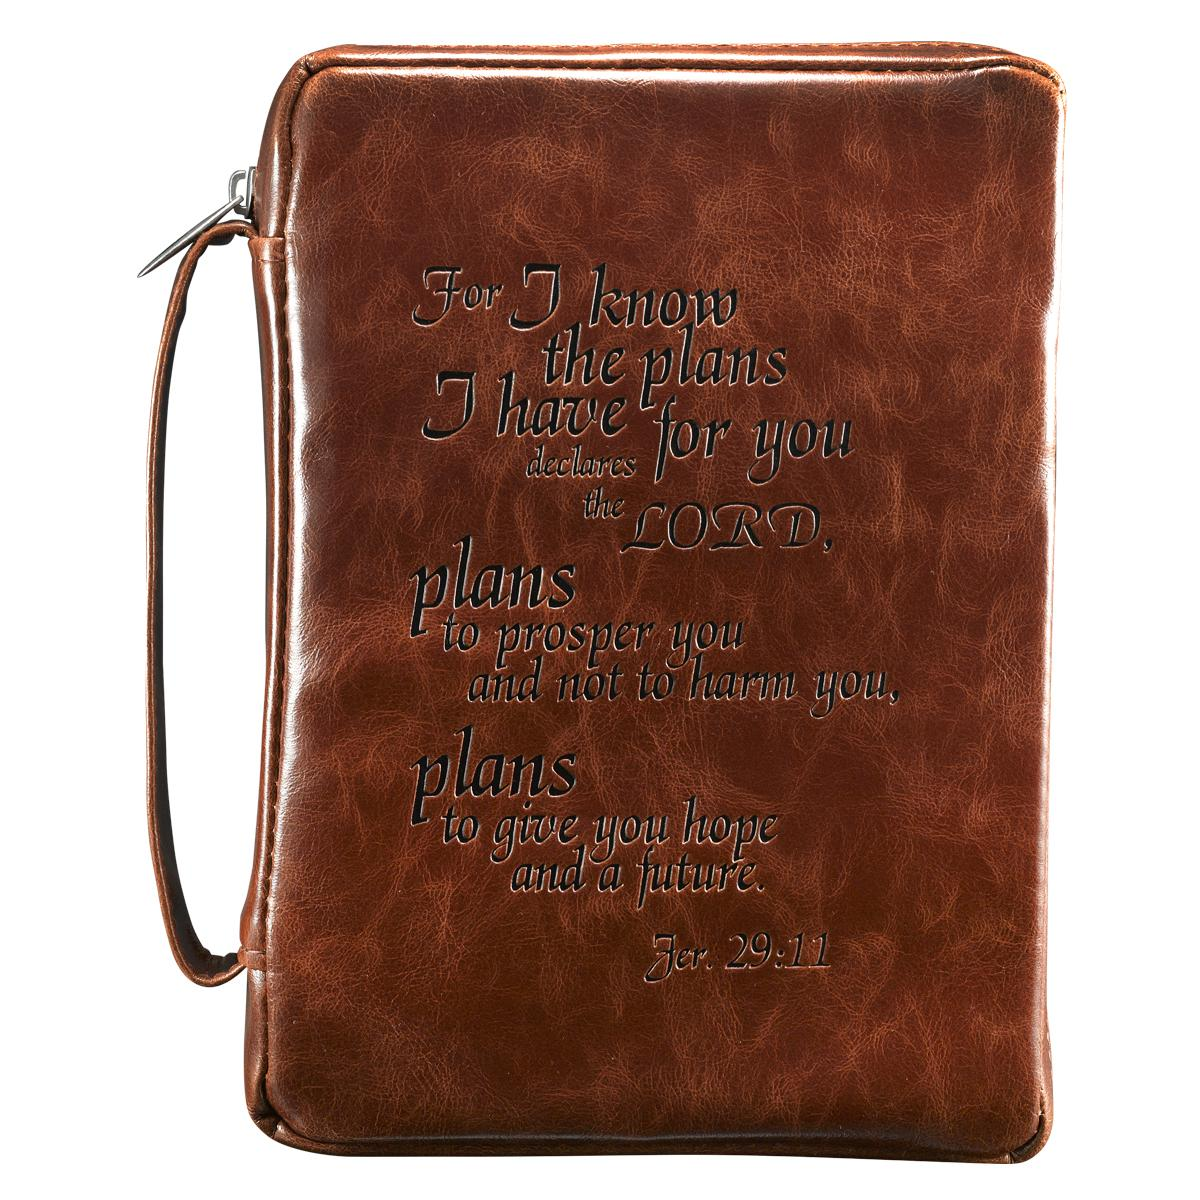 Vintage Leather Look Jeremiah Verse Bible Book Cover Large: Jer. 29:11 (Burgundy) Vintage Leather-Look Bible Cover